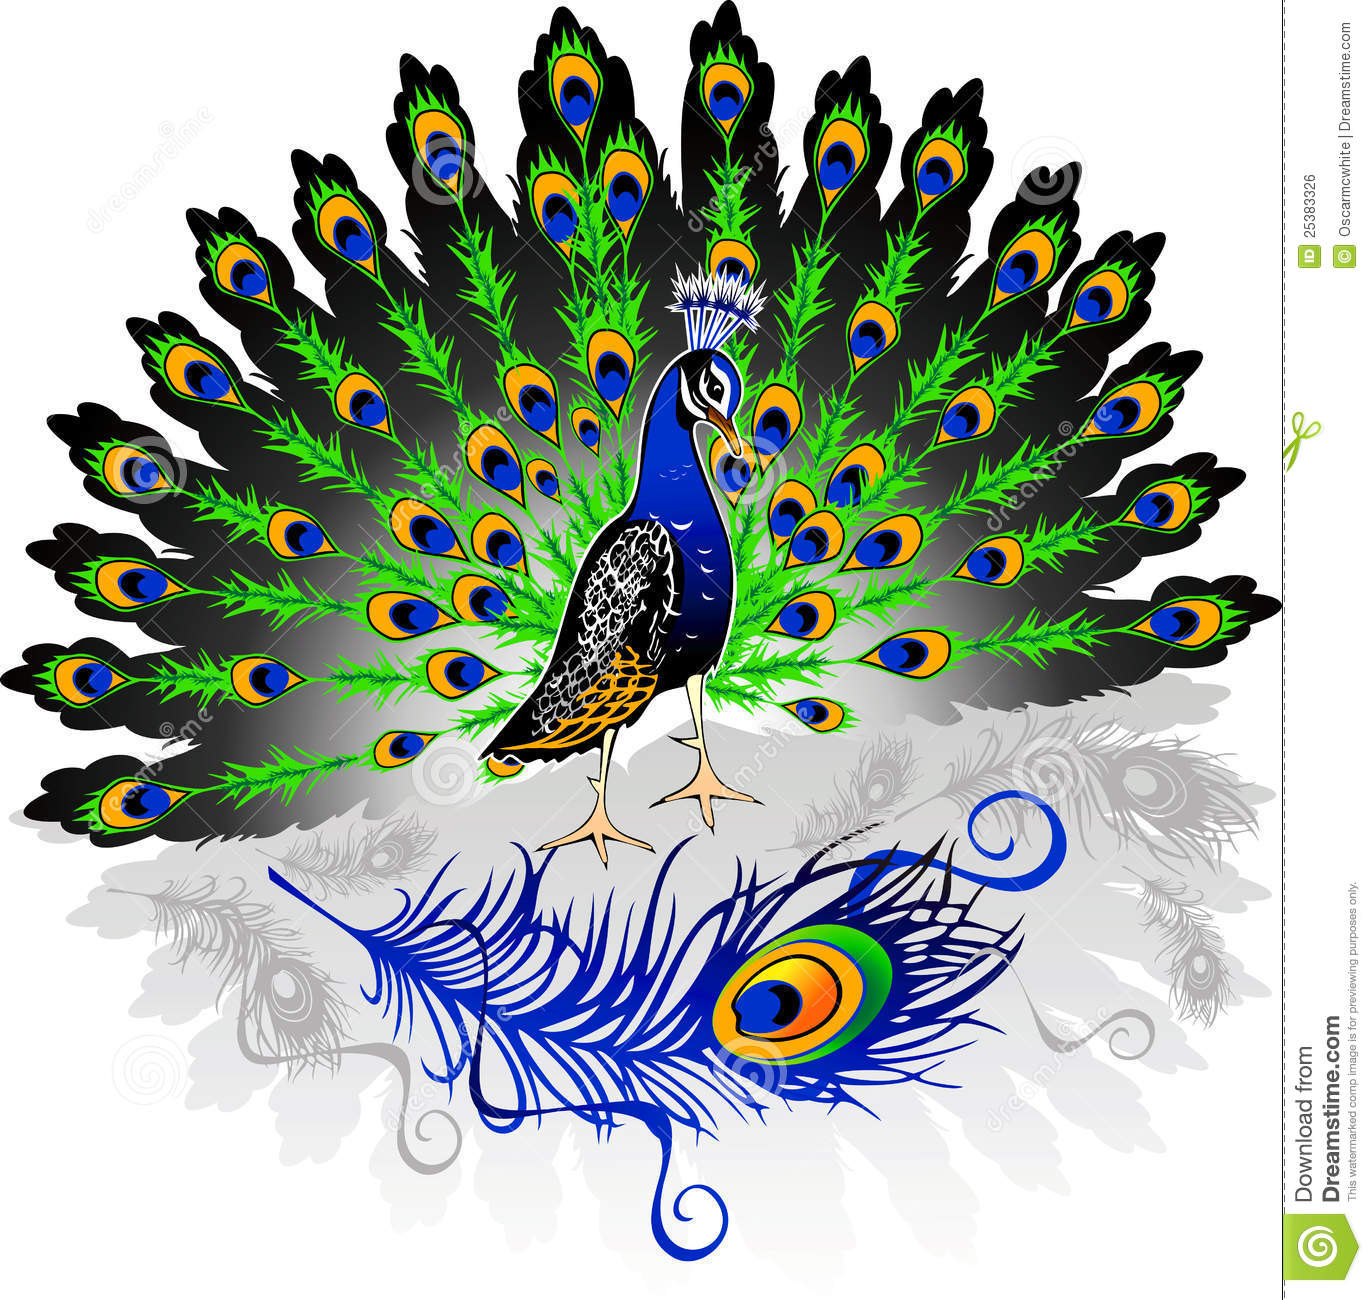 Peacock Royalty Free Stock Image - Image: 25383326